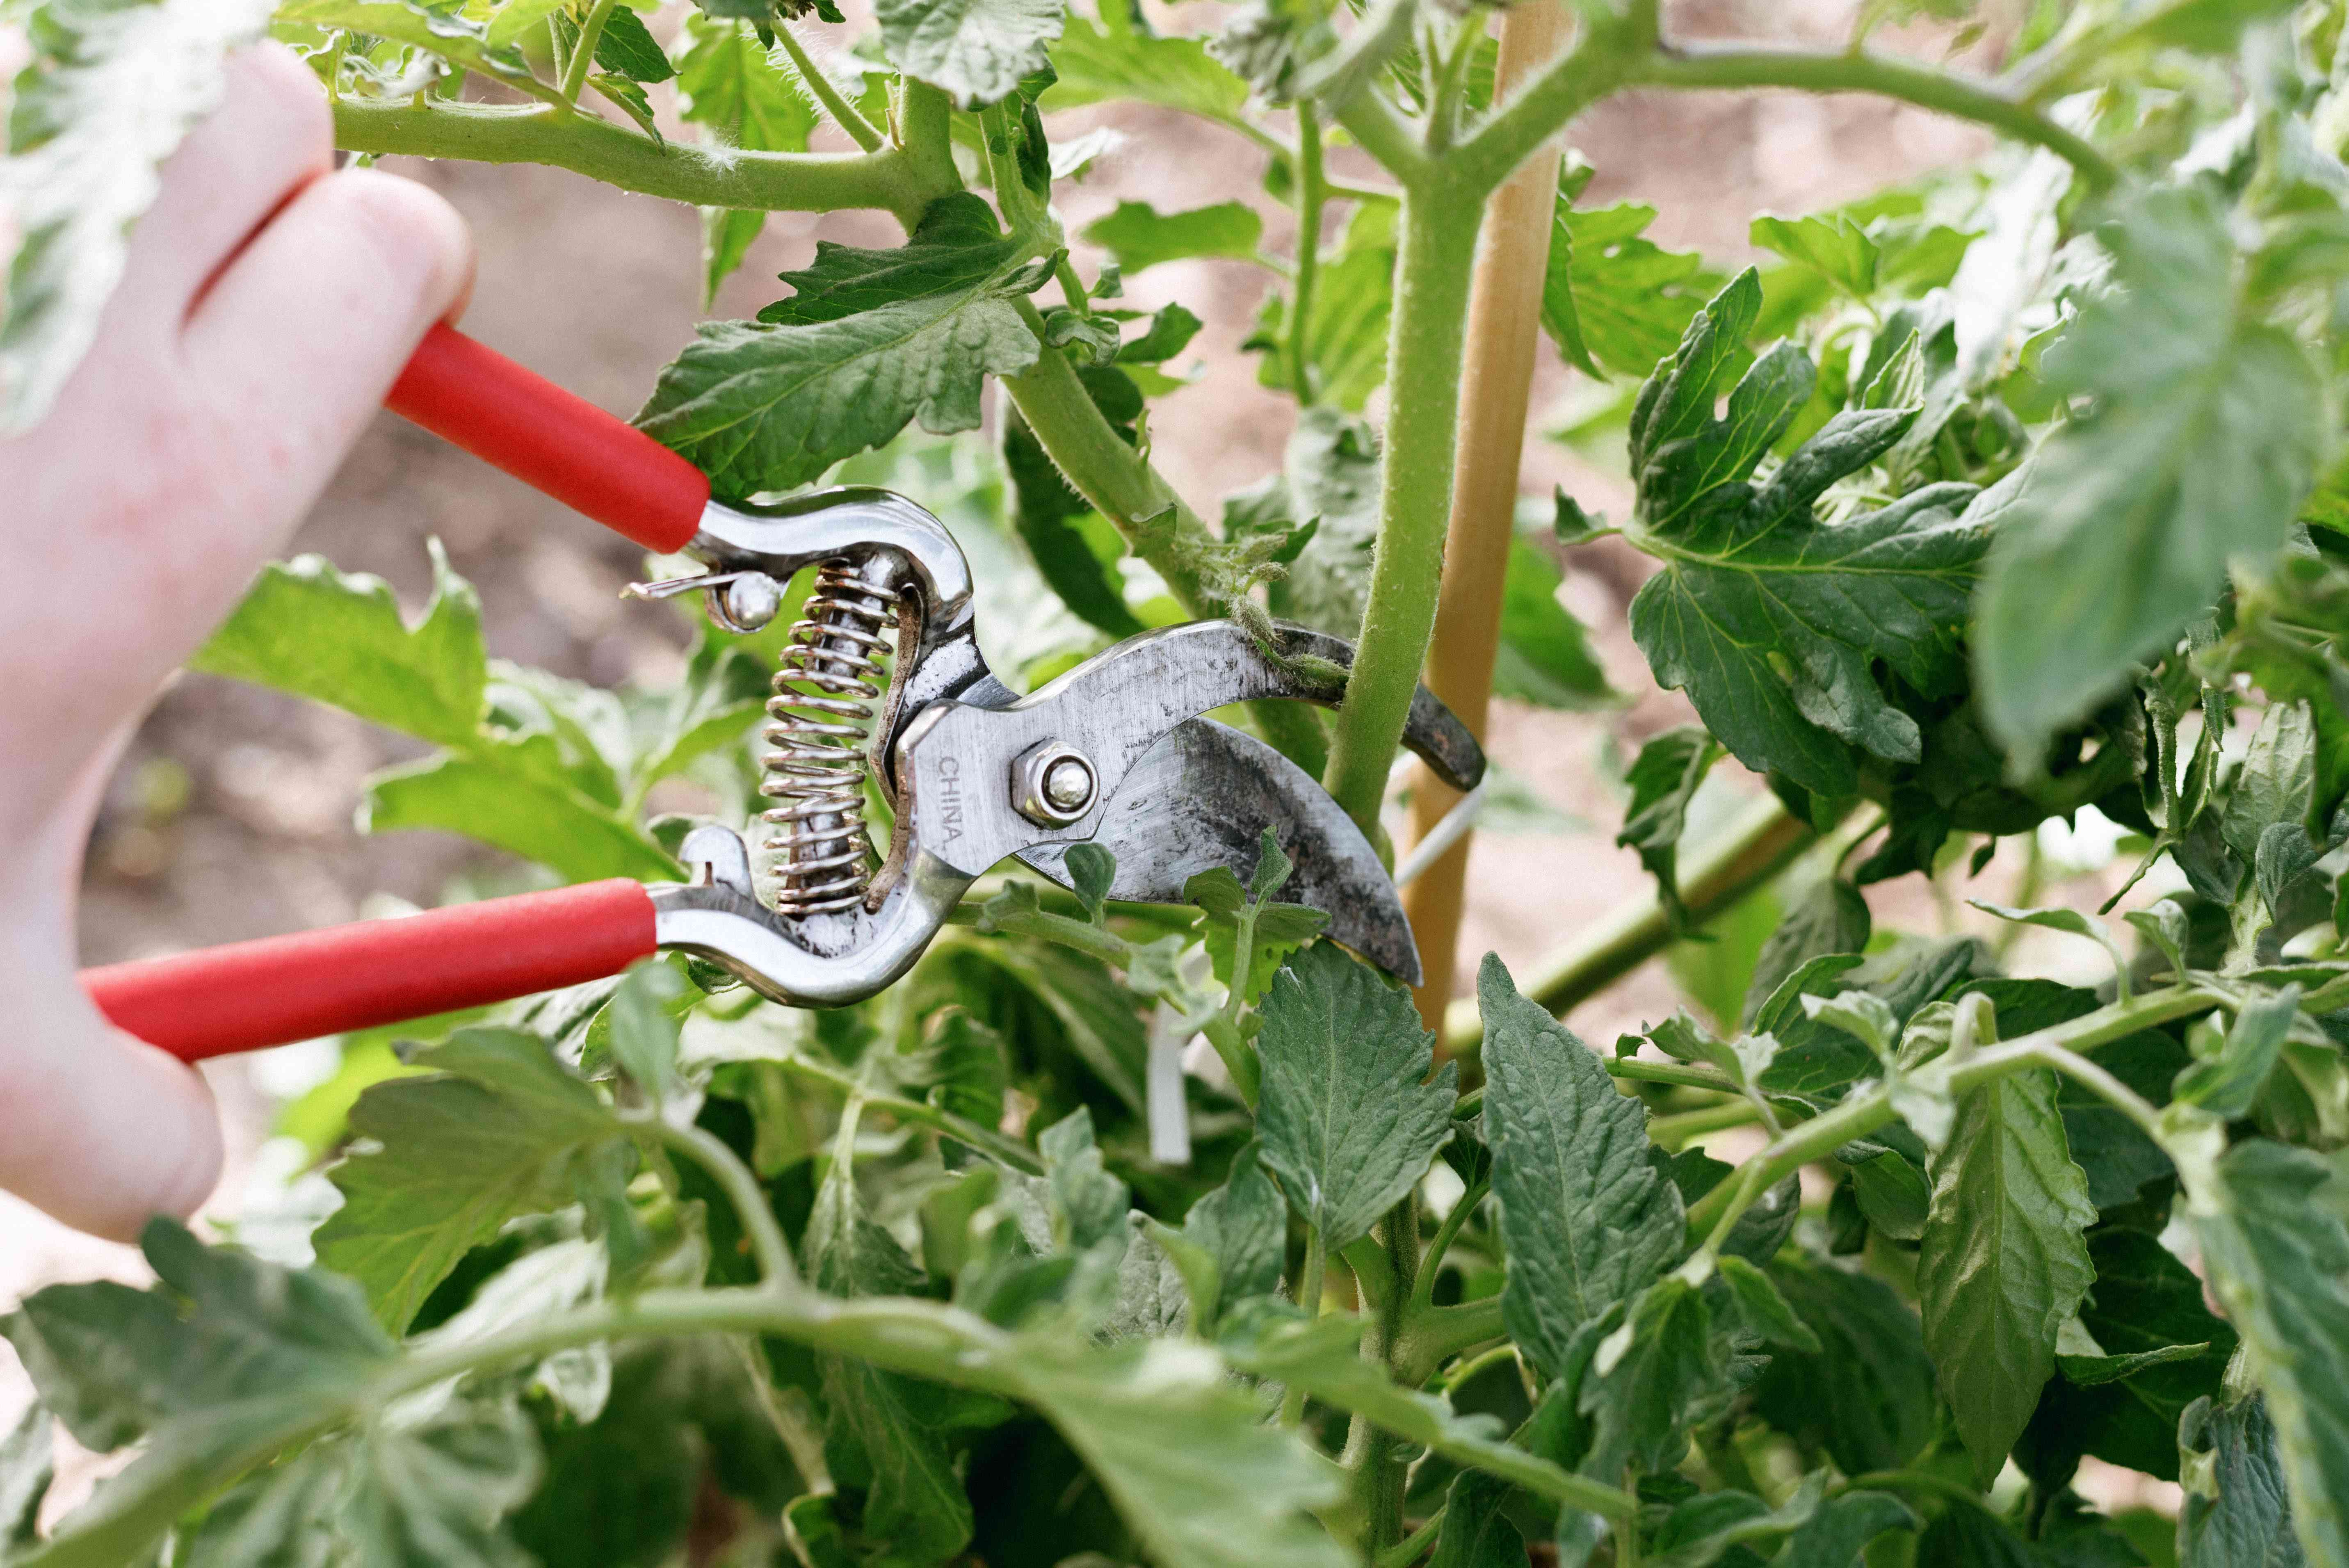 person pruning a tomato plant